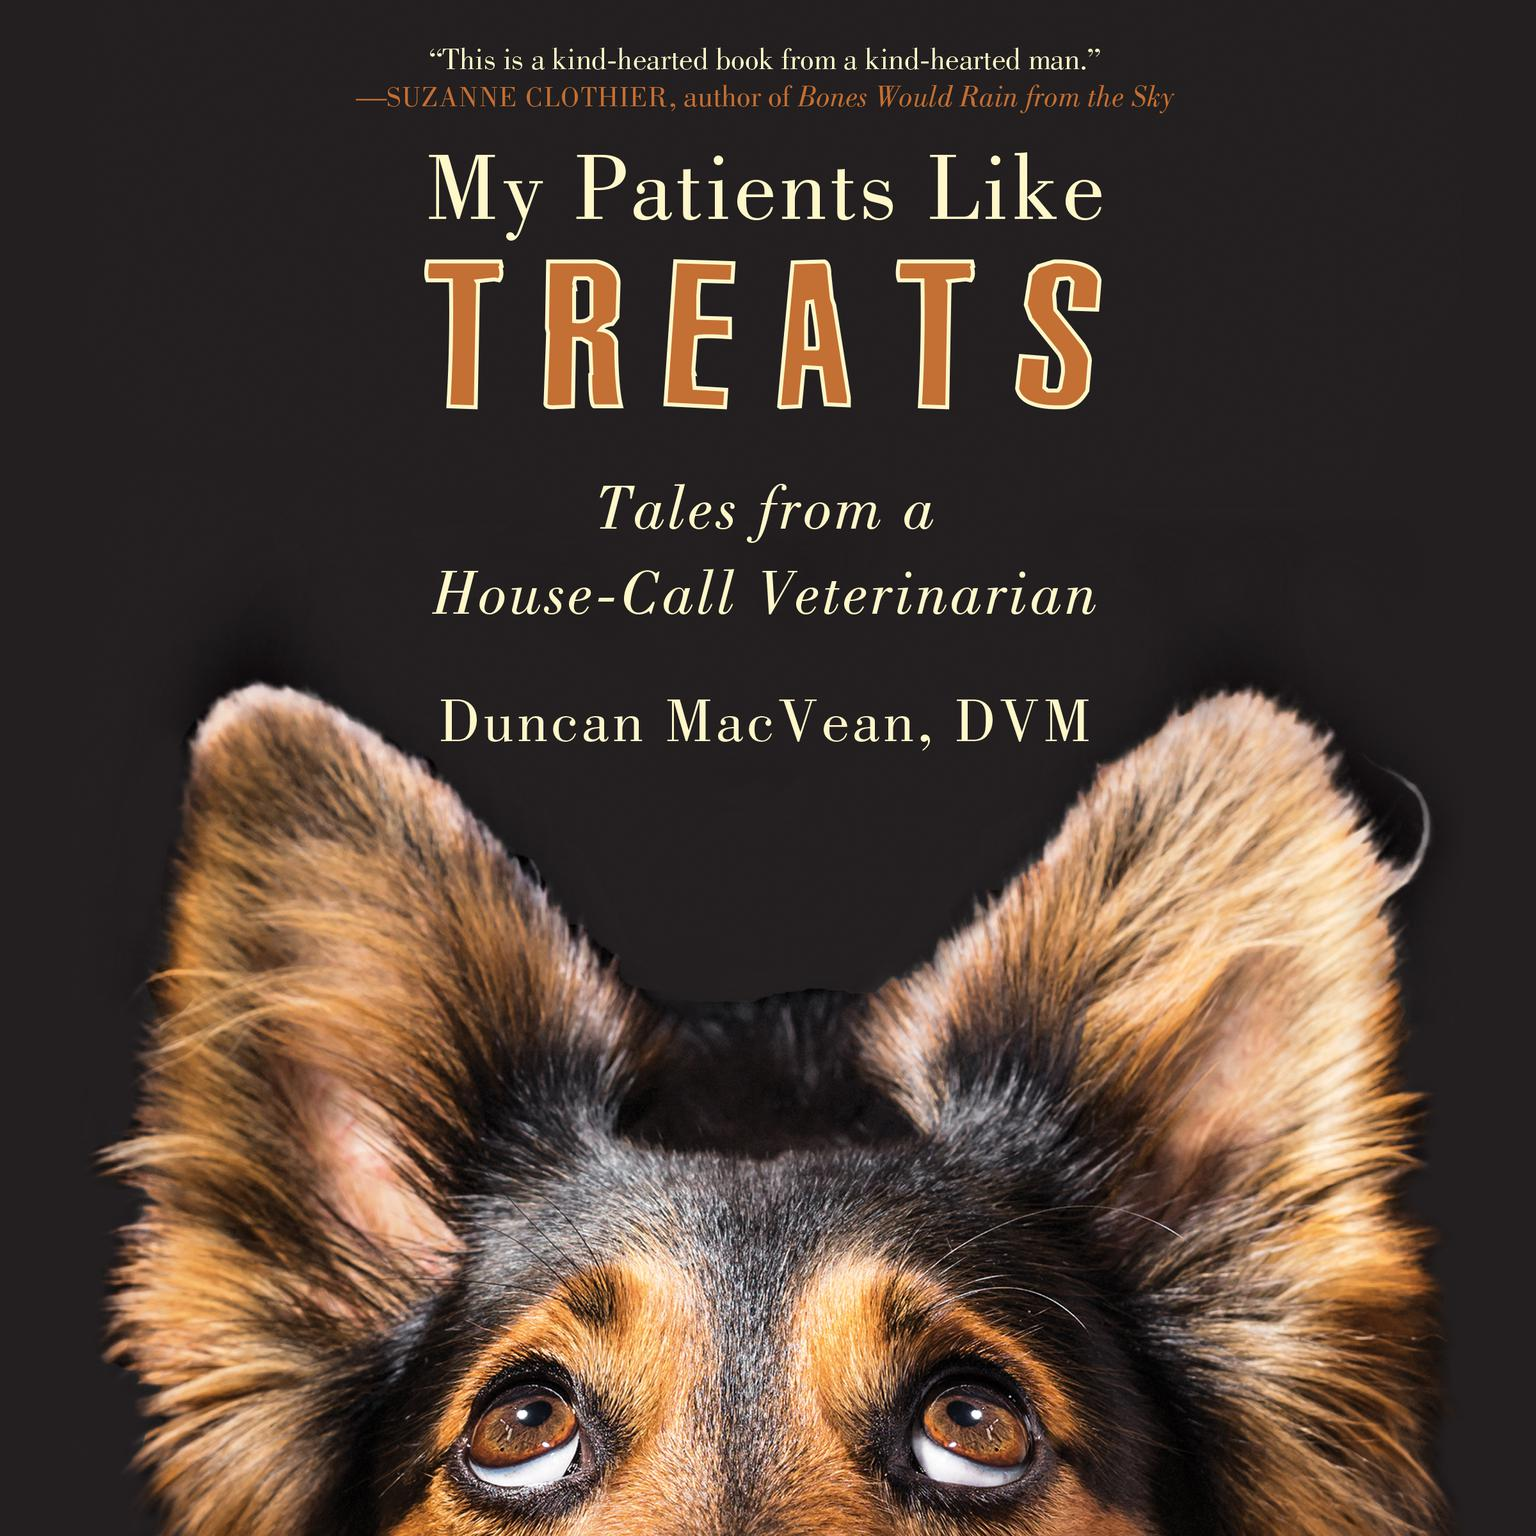 My Patients Like Treats: Tales from a House-Call Veterinarian Audiobook, by Duncan MacVean